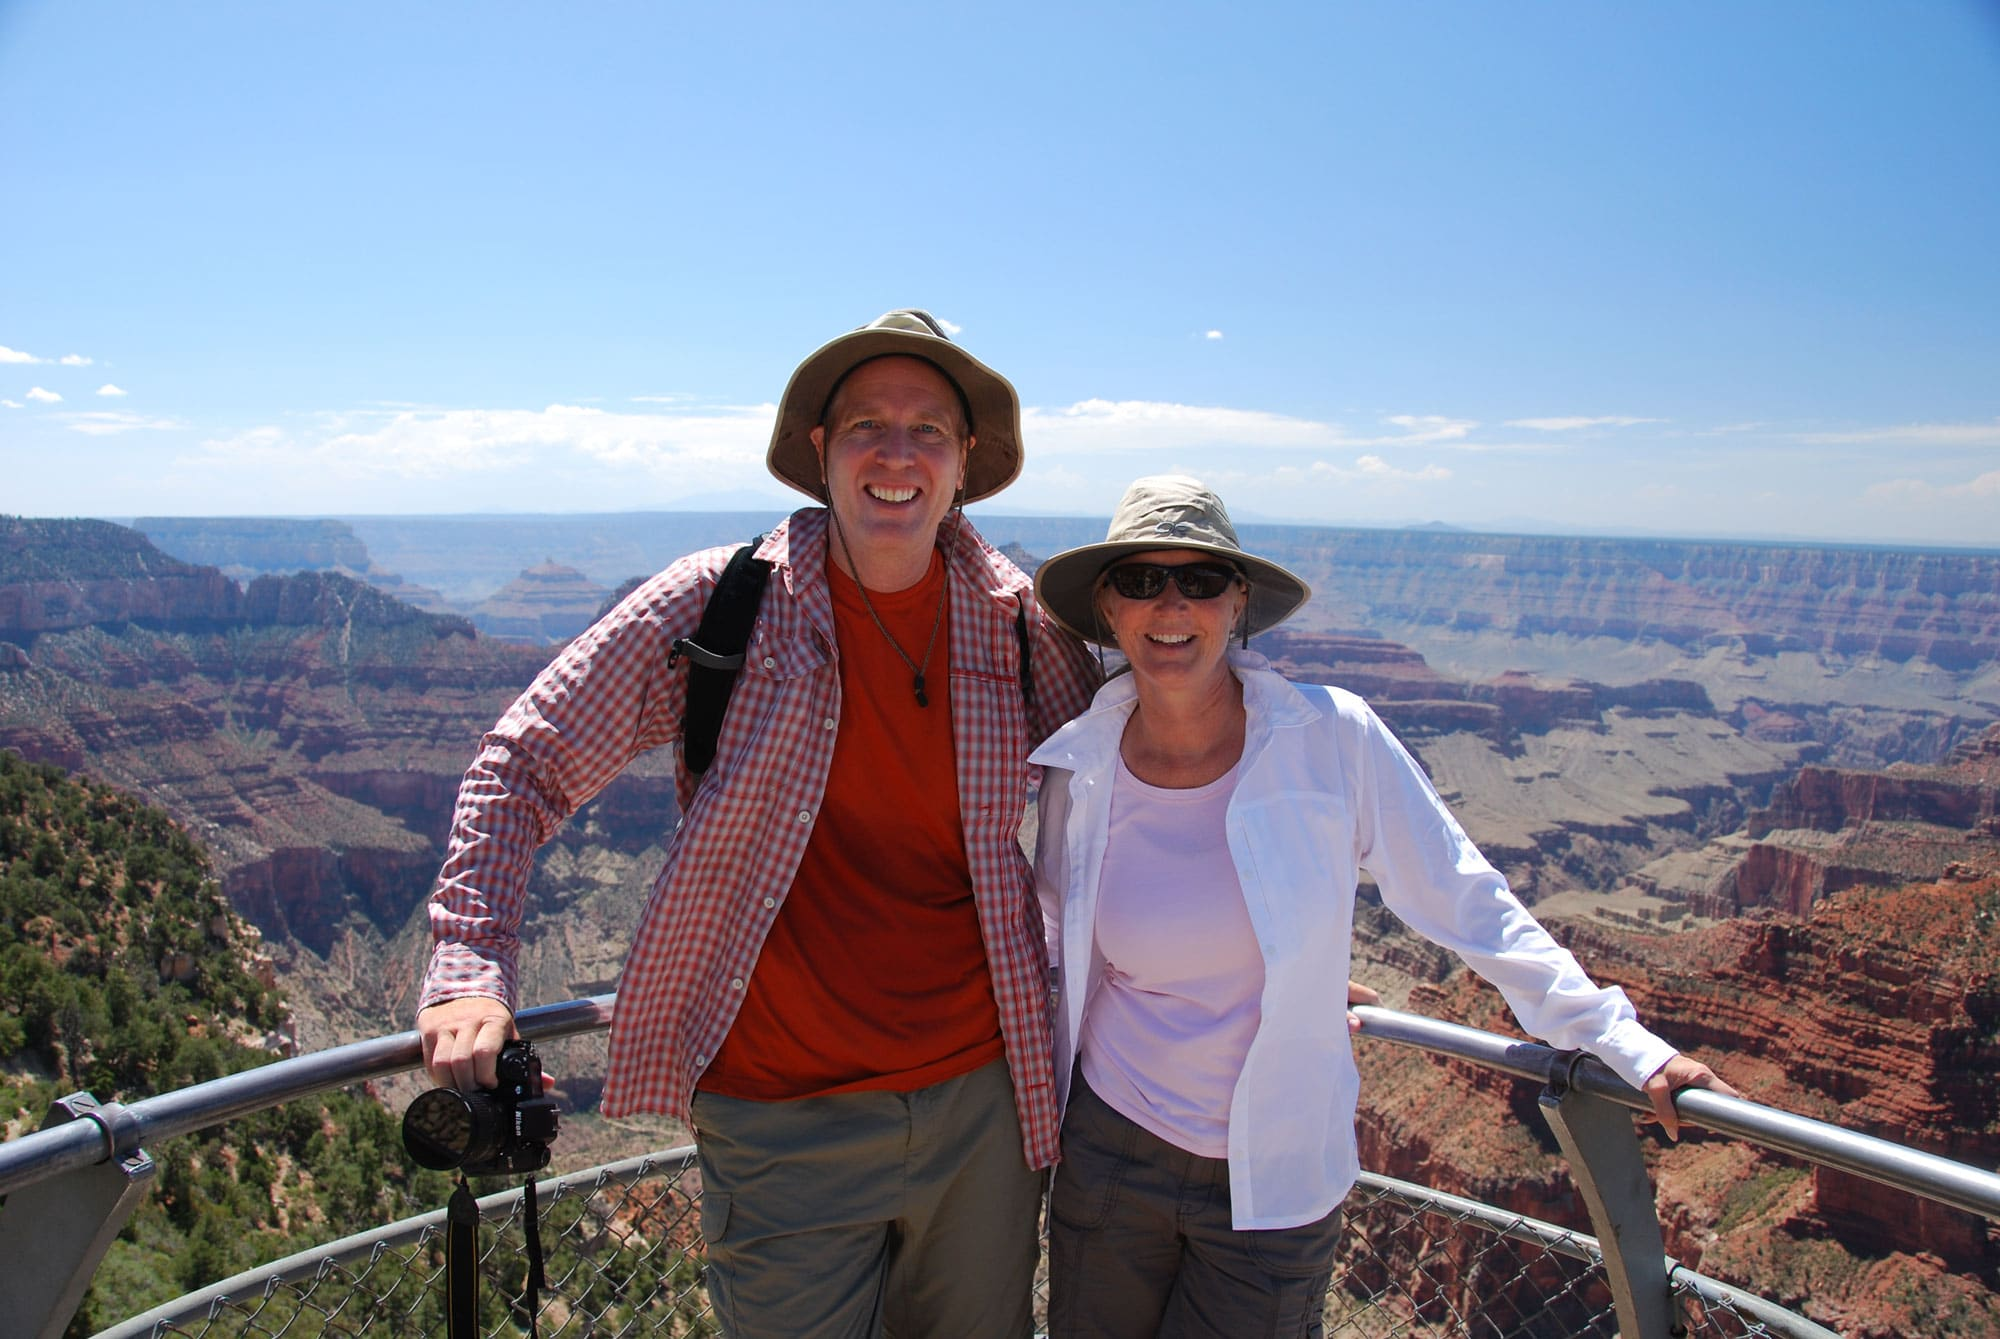 August 2012 – Honeymoon at the North Rim of Grand Canyon National Park